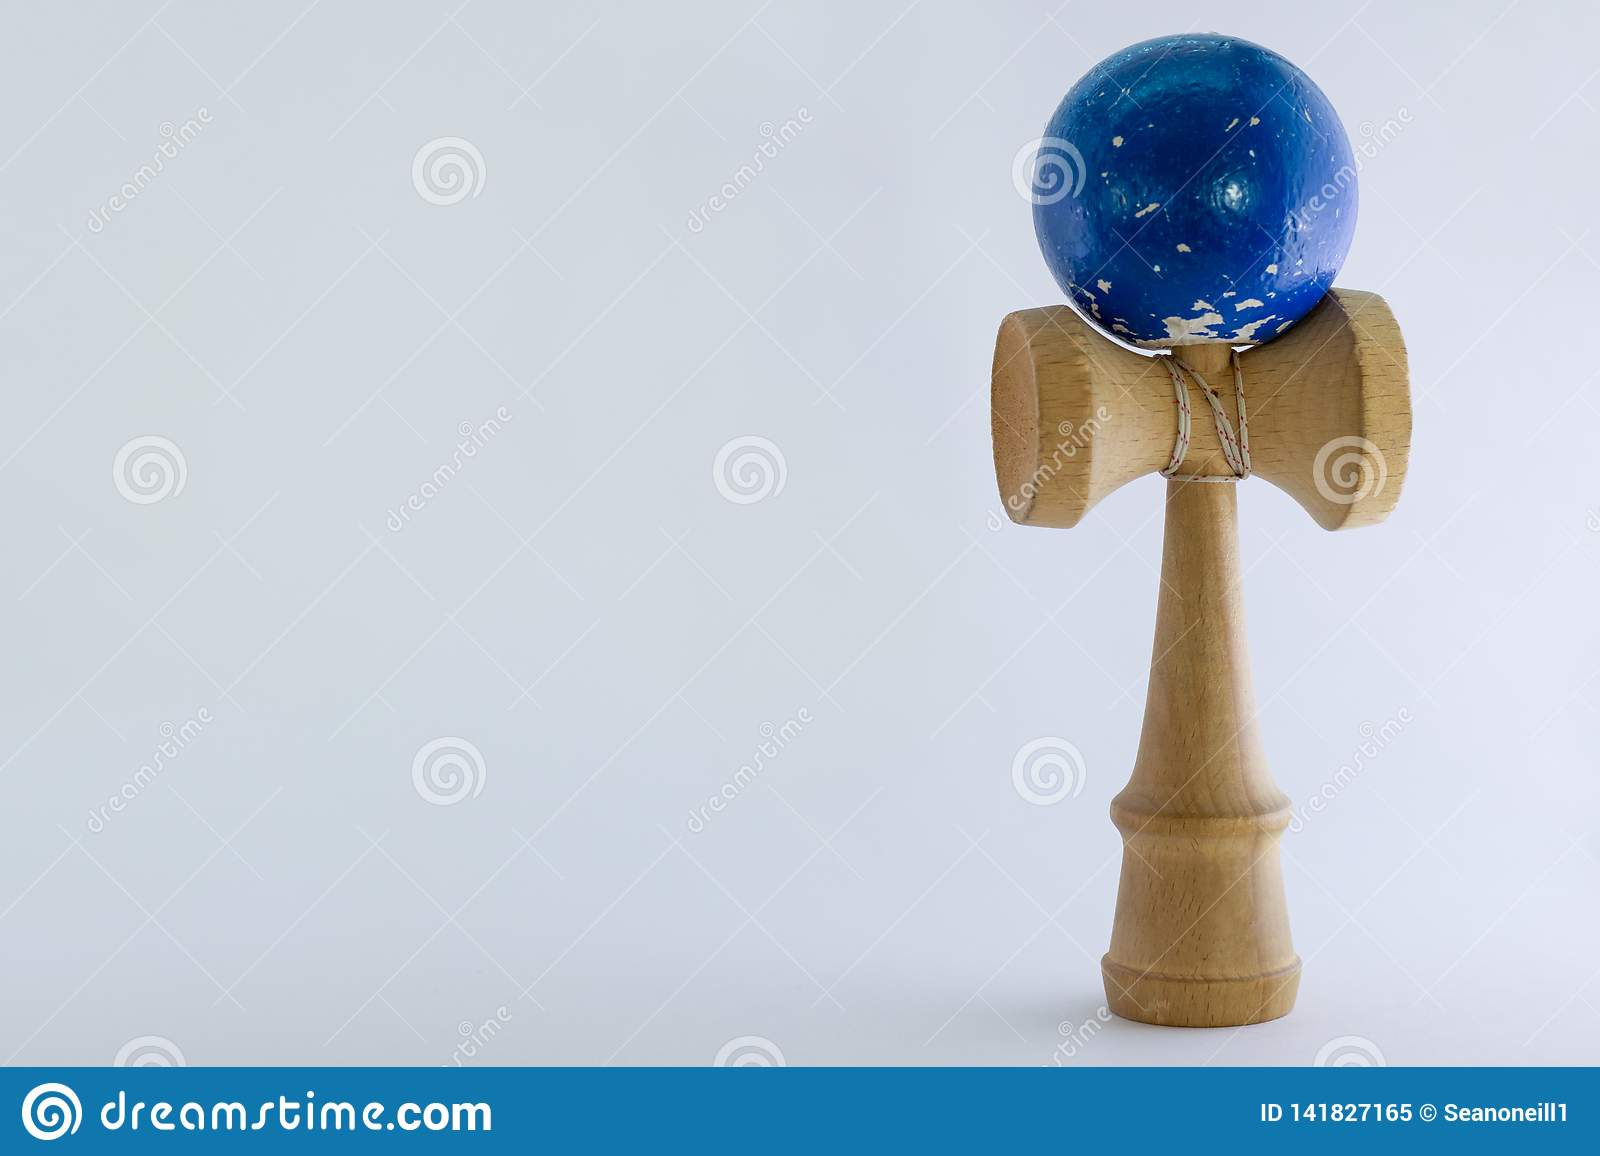 Plain white background with ball and cup toy